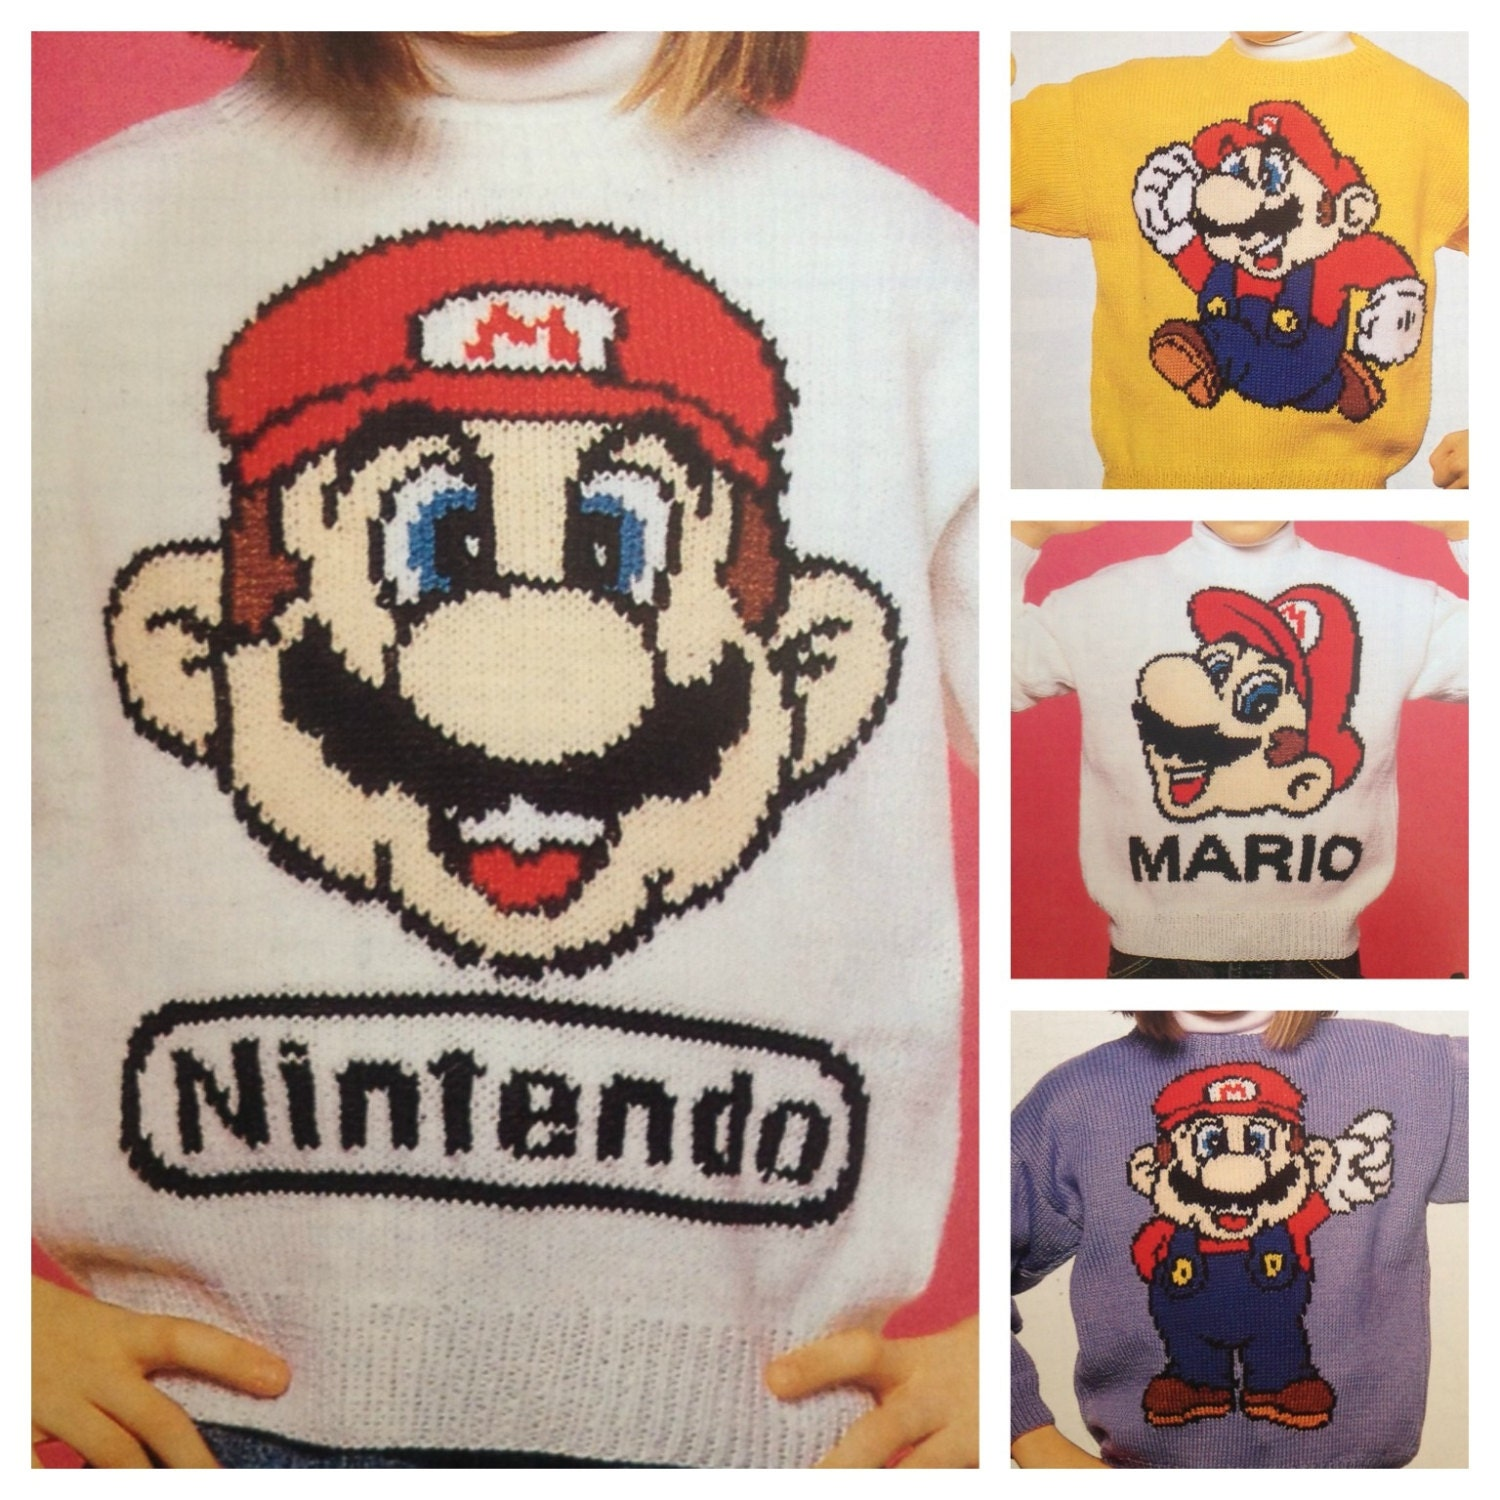 Super Mario knitting pattern sweaters for children and adults dk or ...